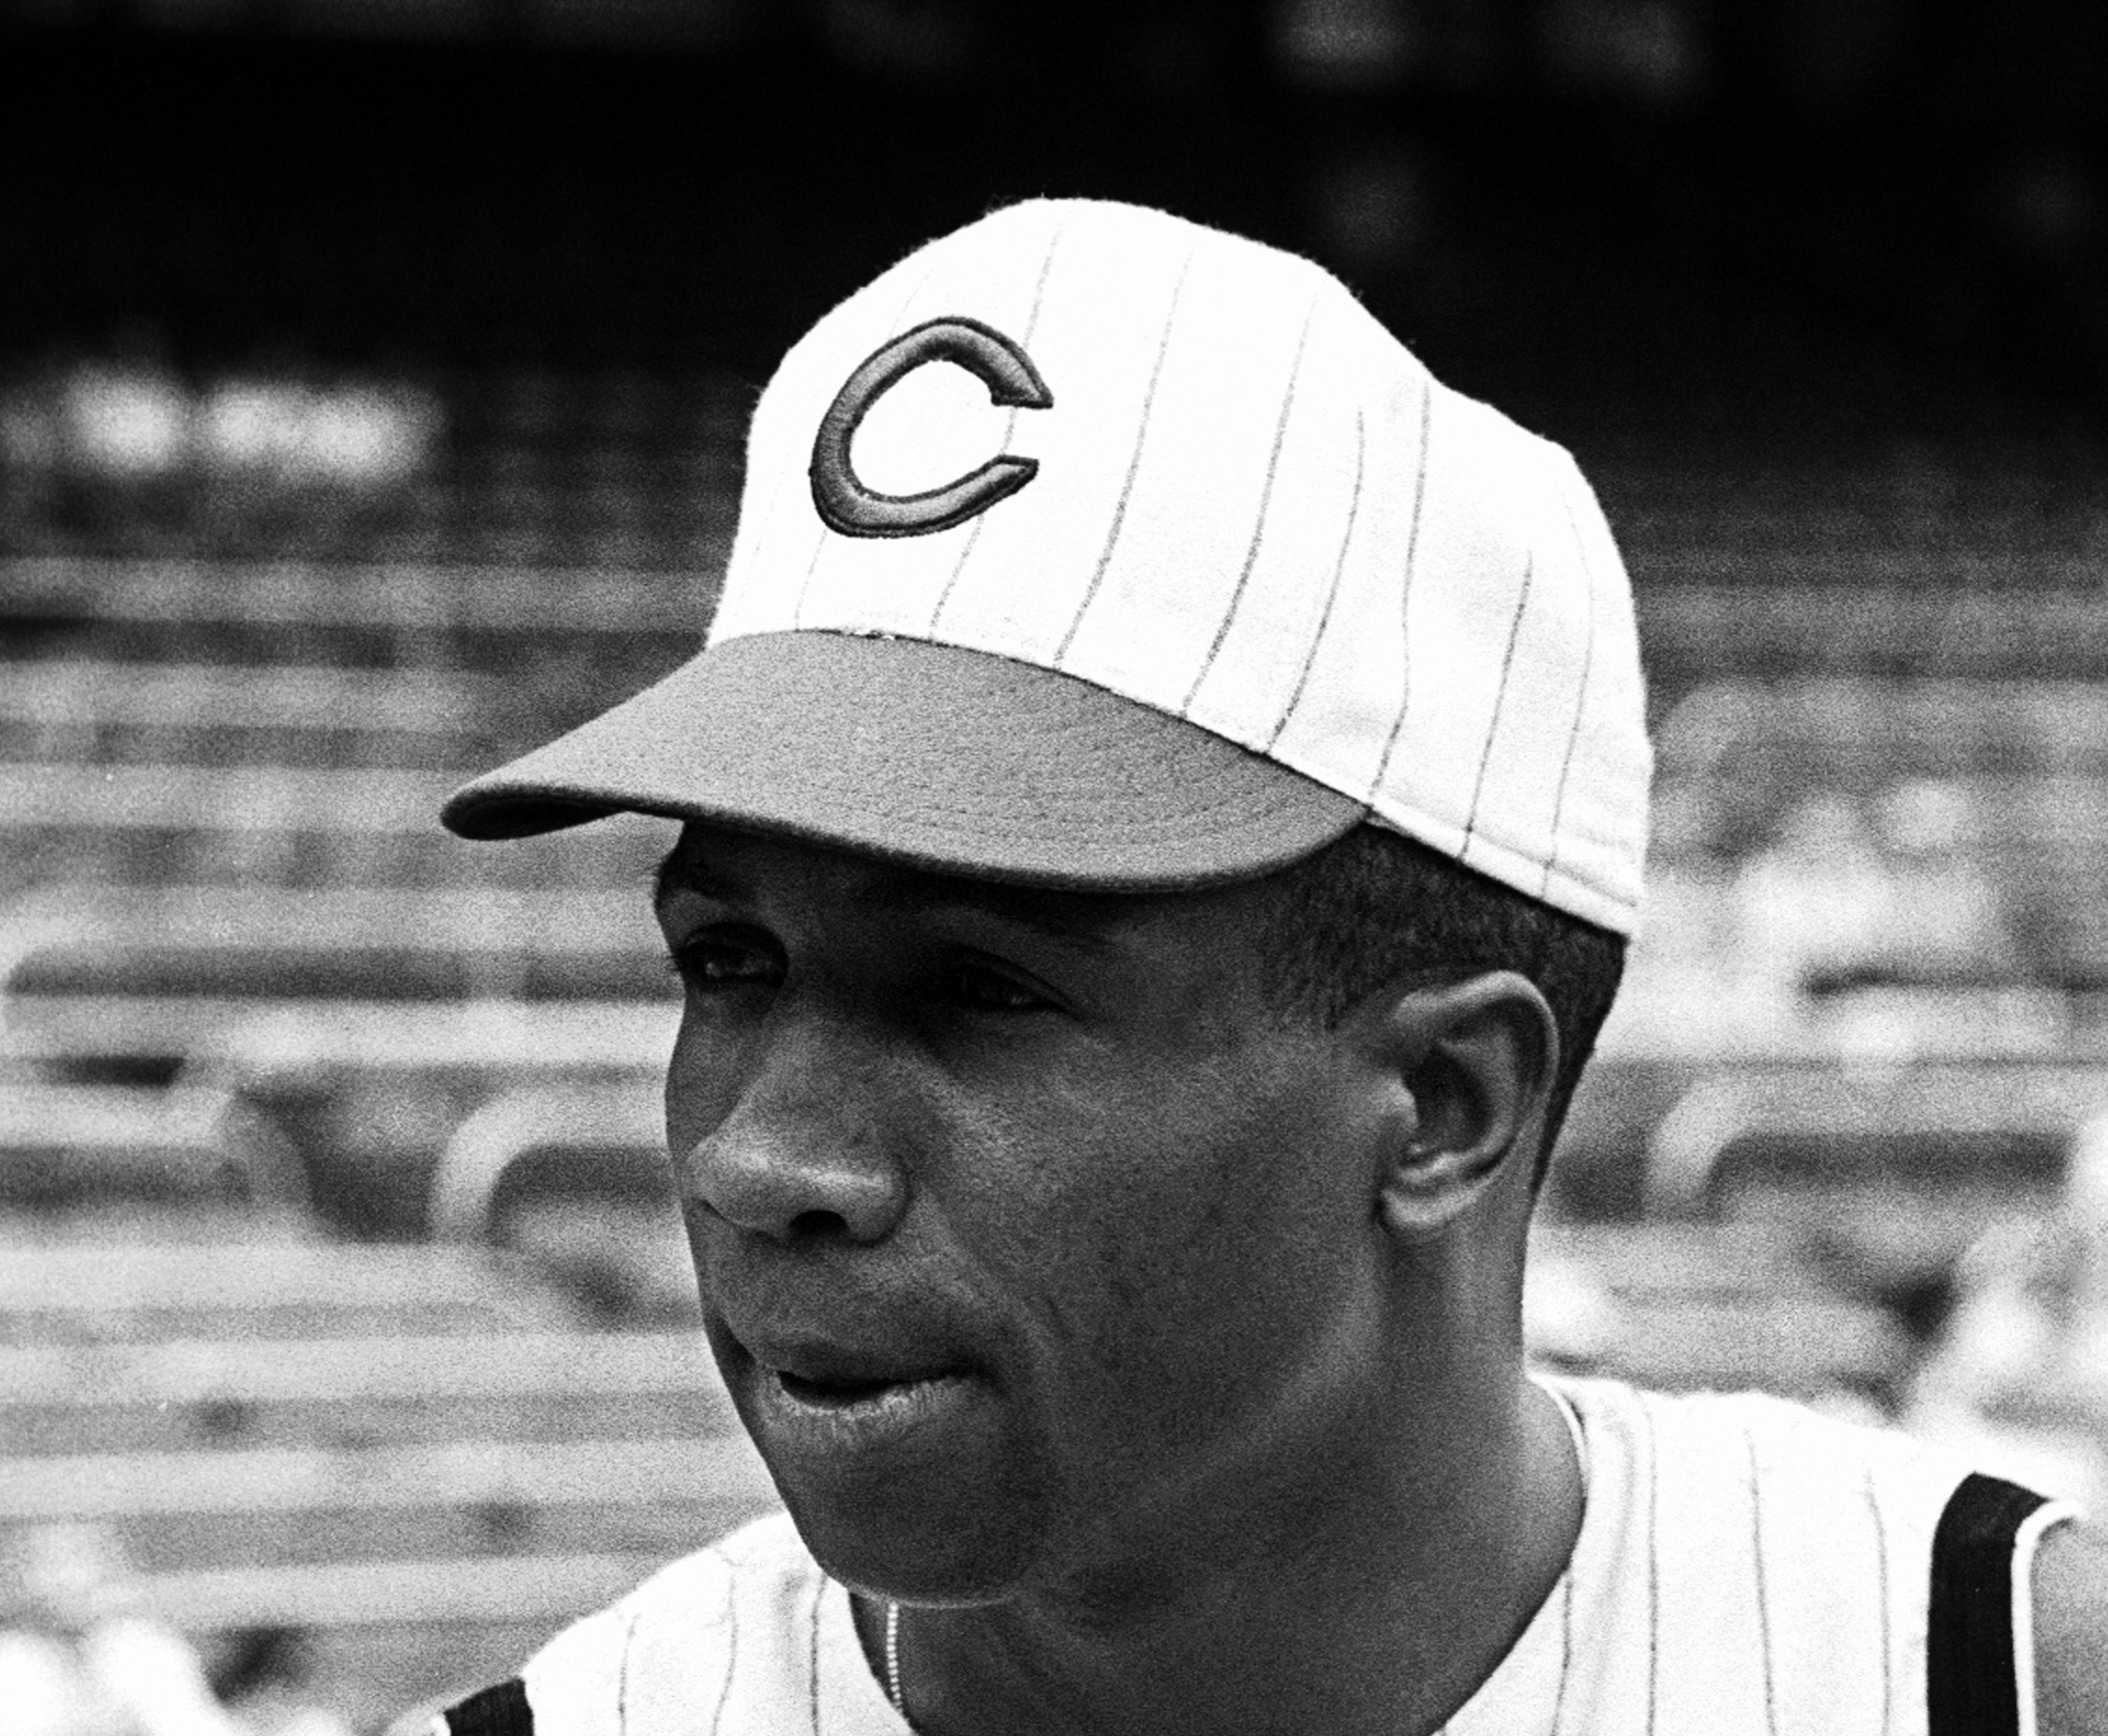 frank robinson traded to orioles over restaurant incident